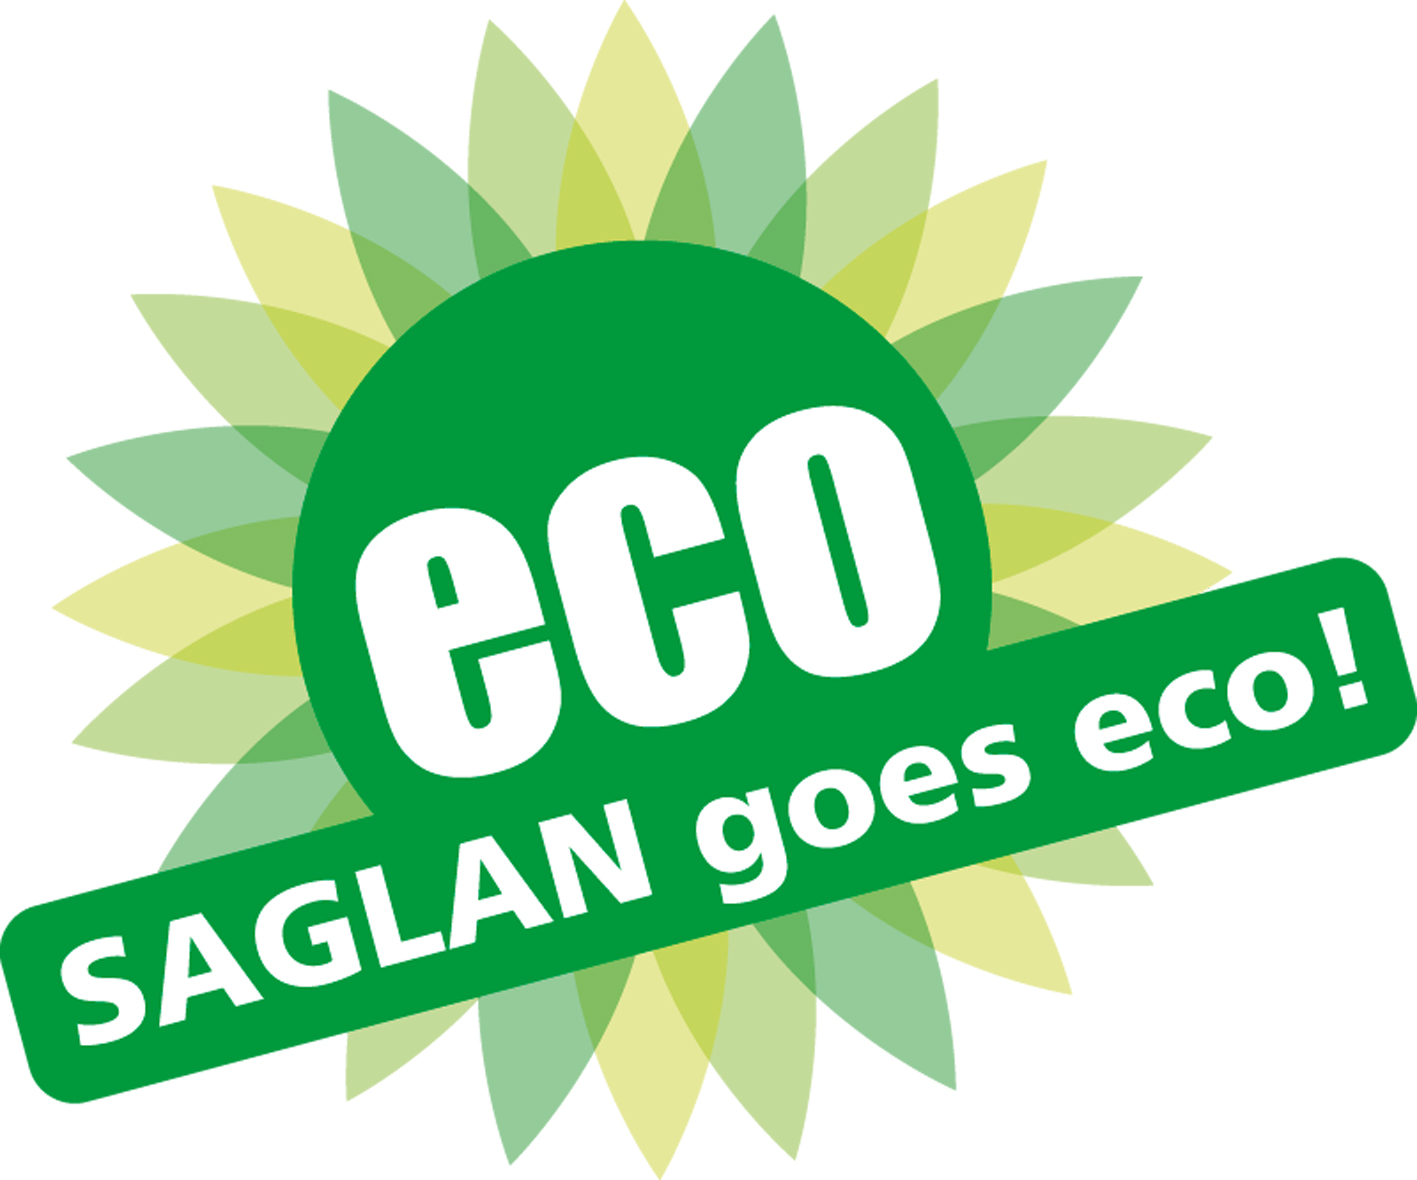 Saglan goes ECO